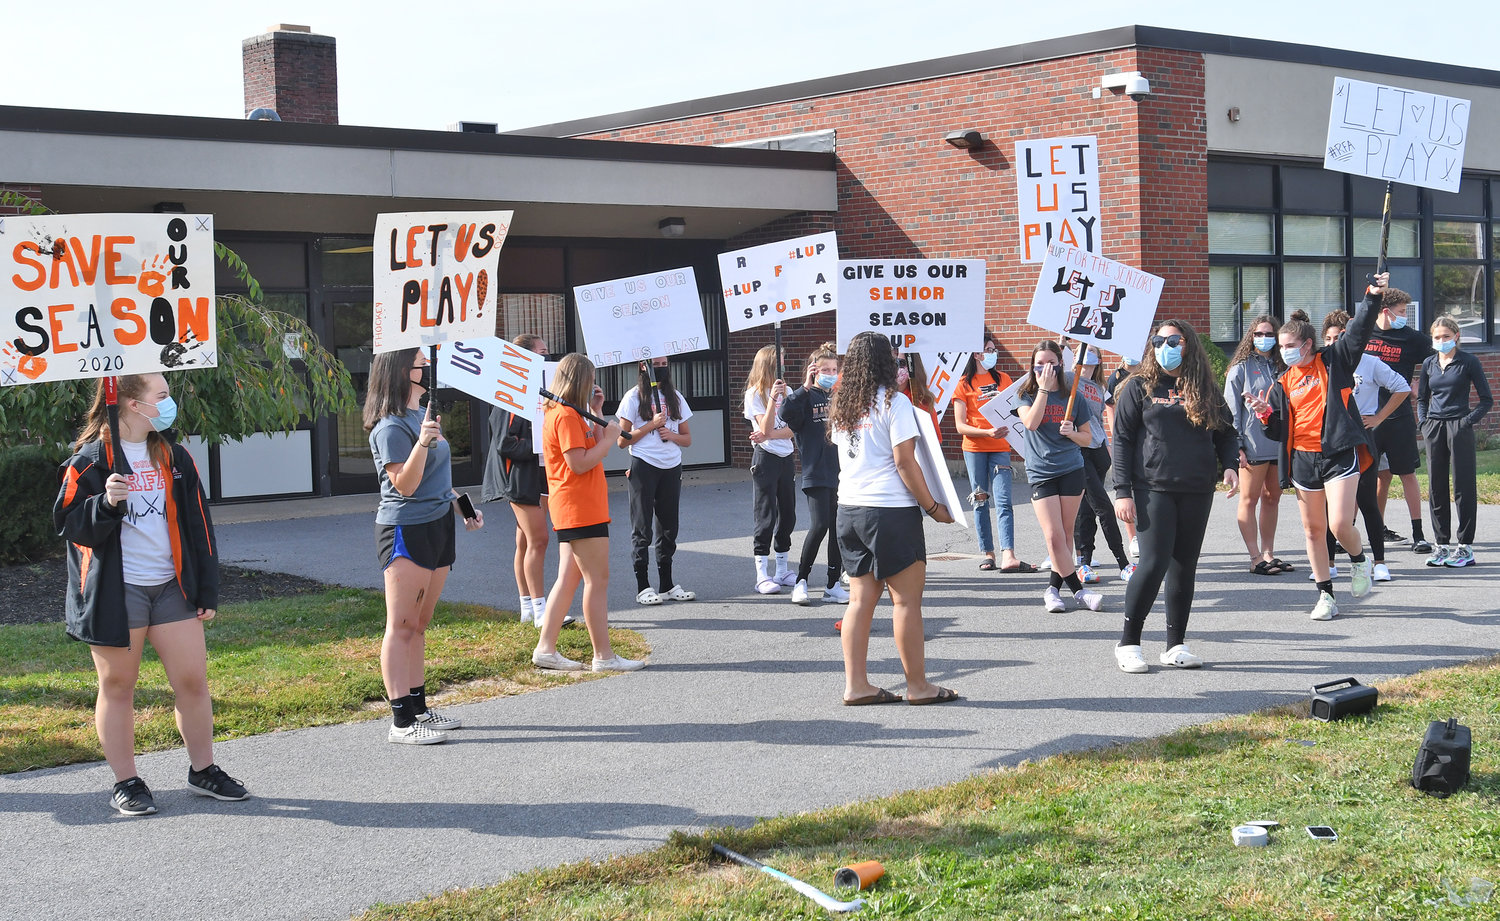 RALLYING FOR SPORTS SEASONS — Student-athletes rally in front of the Rome school district office Thursday afternoon, urging that sports seasons which were planned to begin next week be allowed to proceed. The seasons are now ready to be played, following the Board of Education's approval Thursday night of coaches for the sports involved.